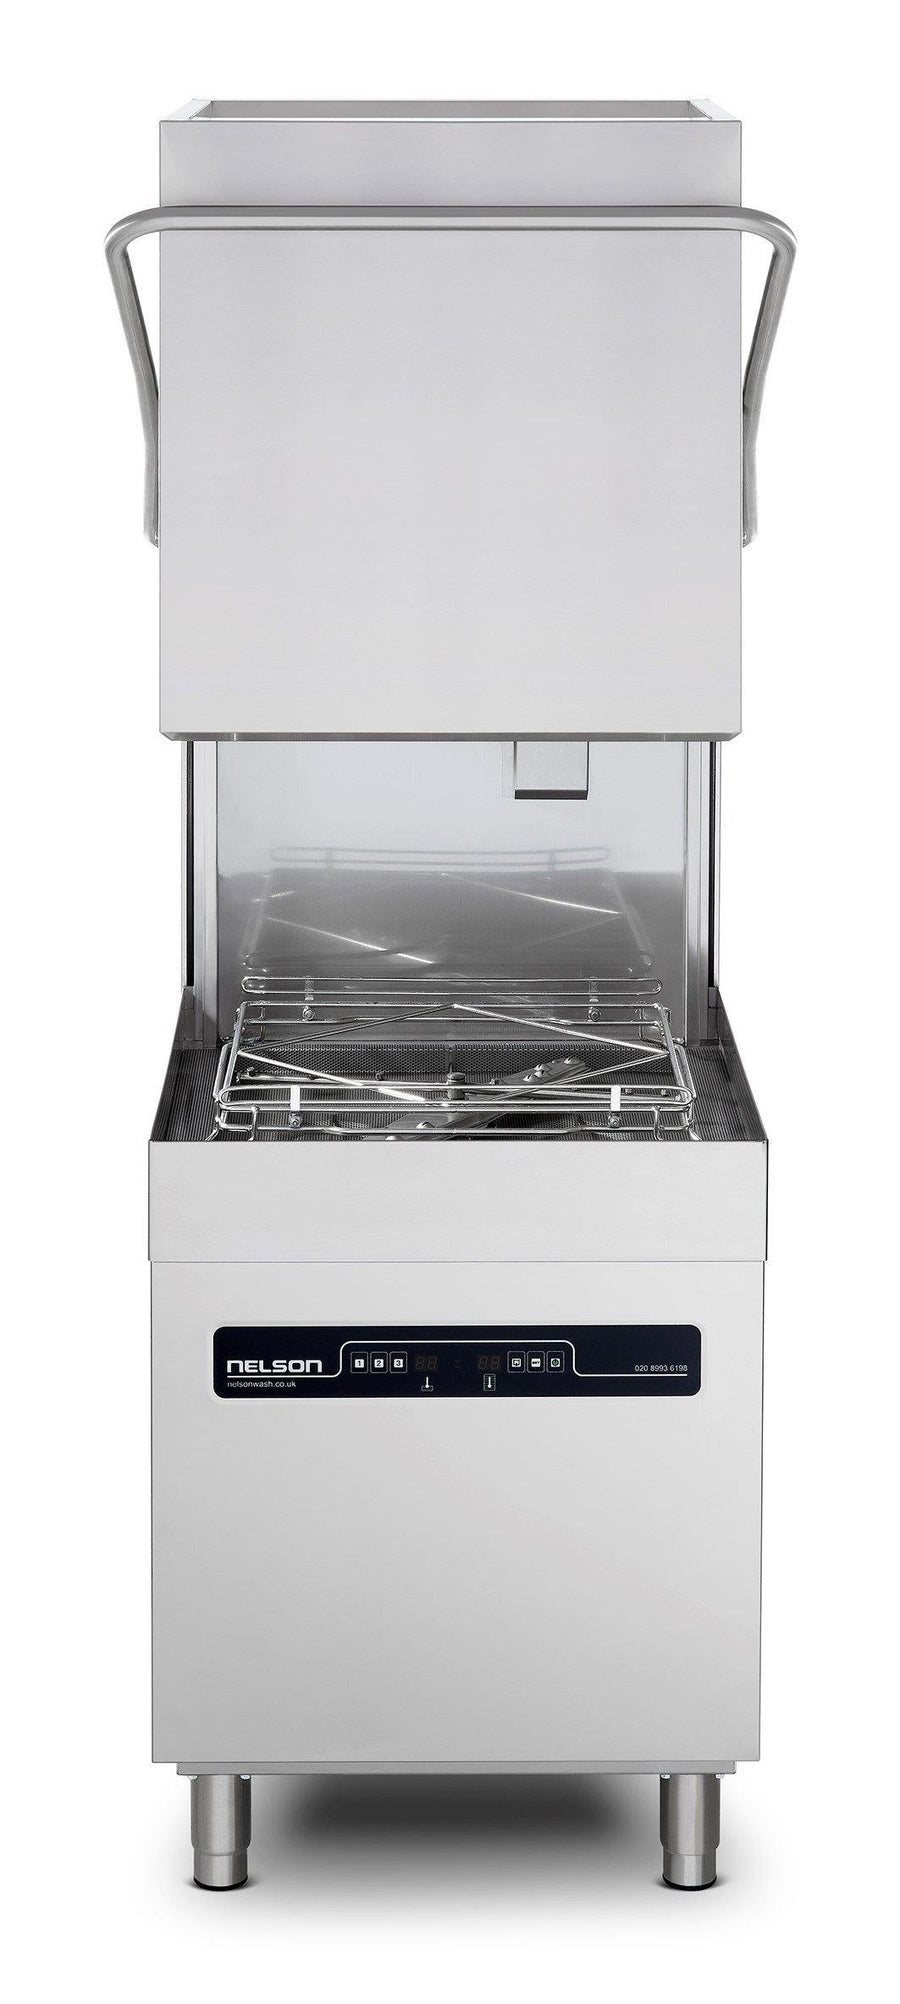 Speedwash SW55 Commercial Passthrough Dishwasher - Nelson Dish & Glasswashing Machines